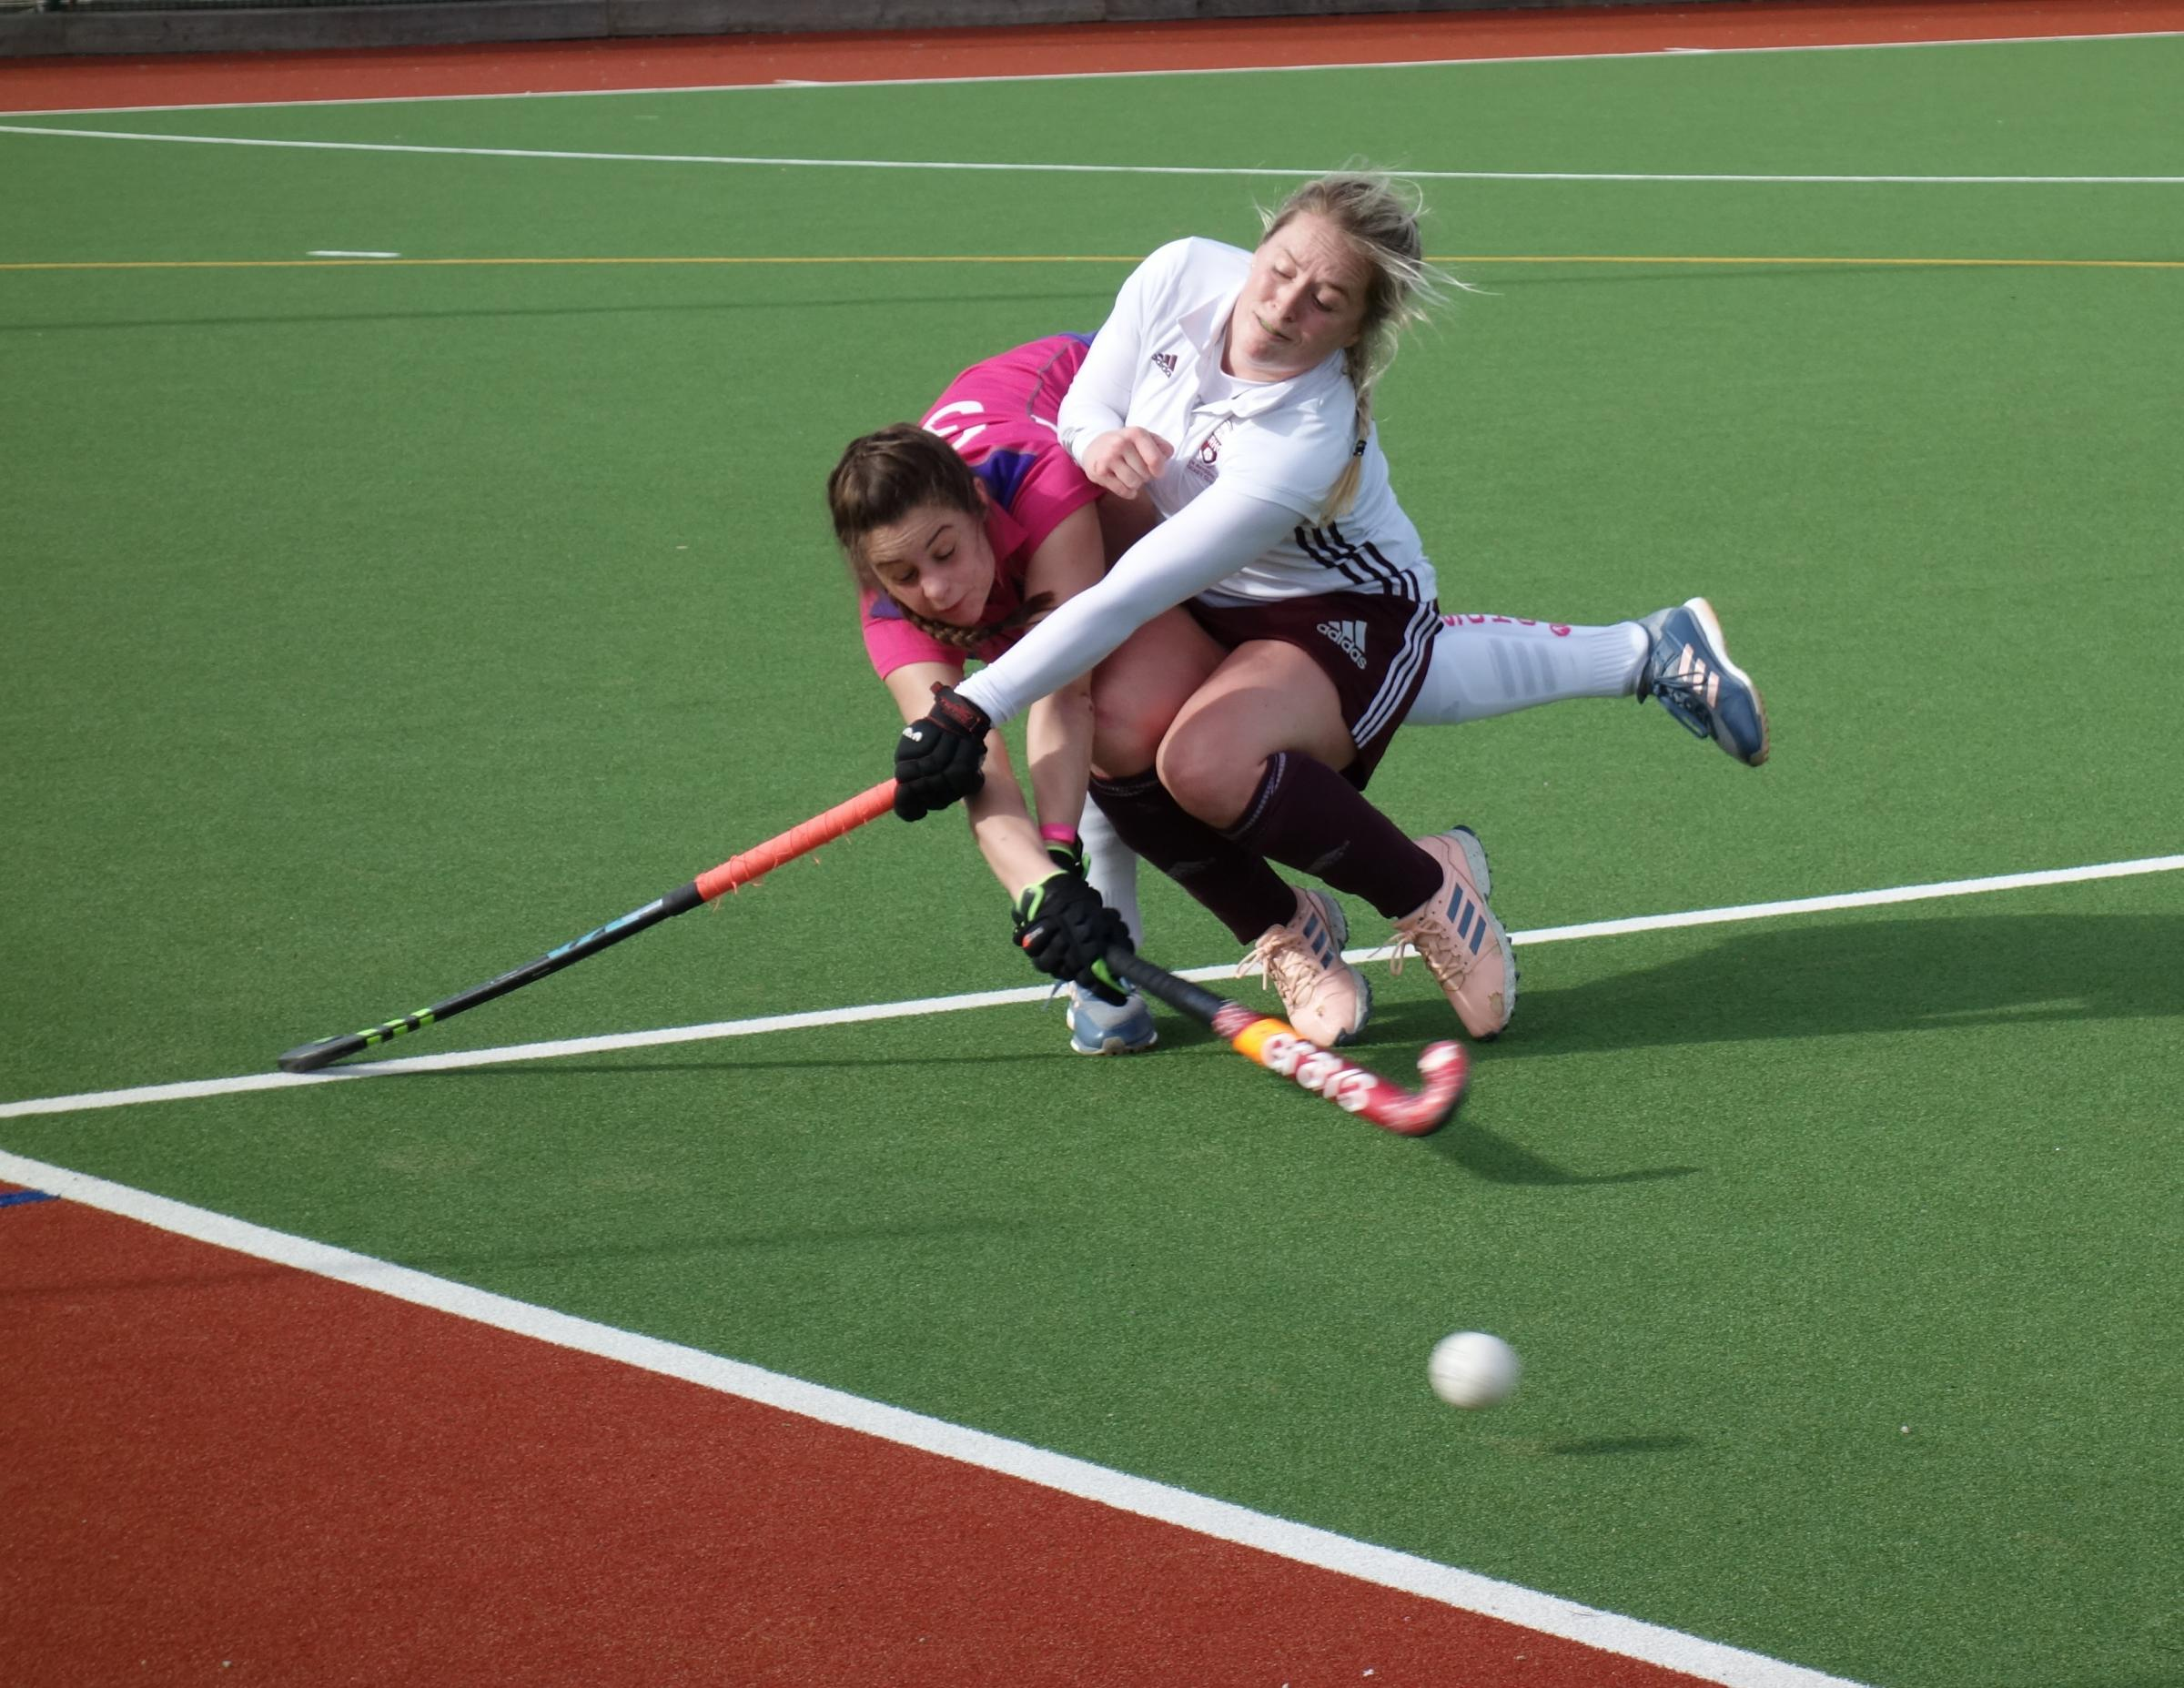 Ben Rhydding's Kate Wood tackles Elinor Thomas of Sutton Colfield